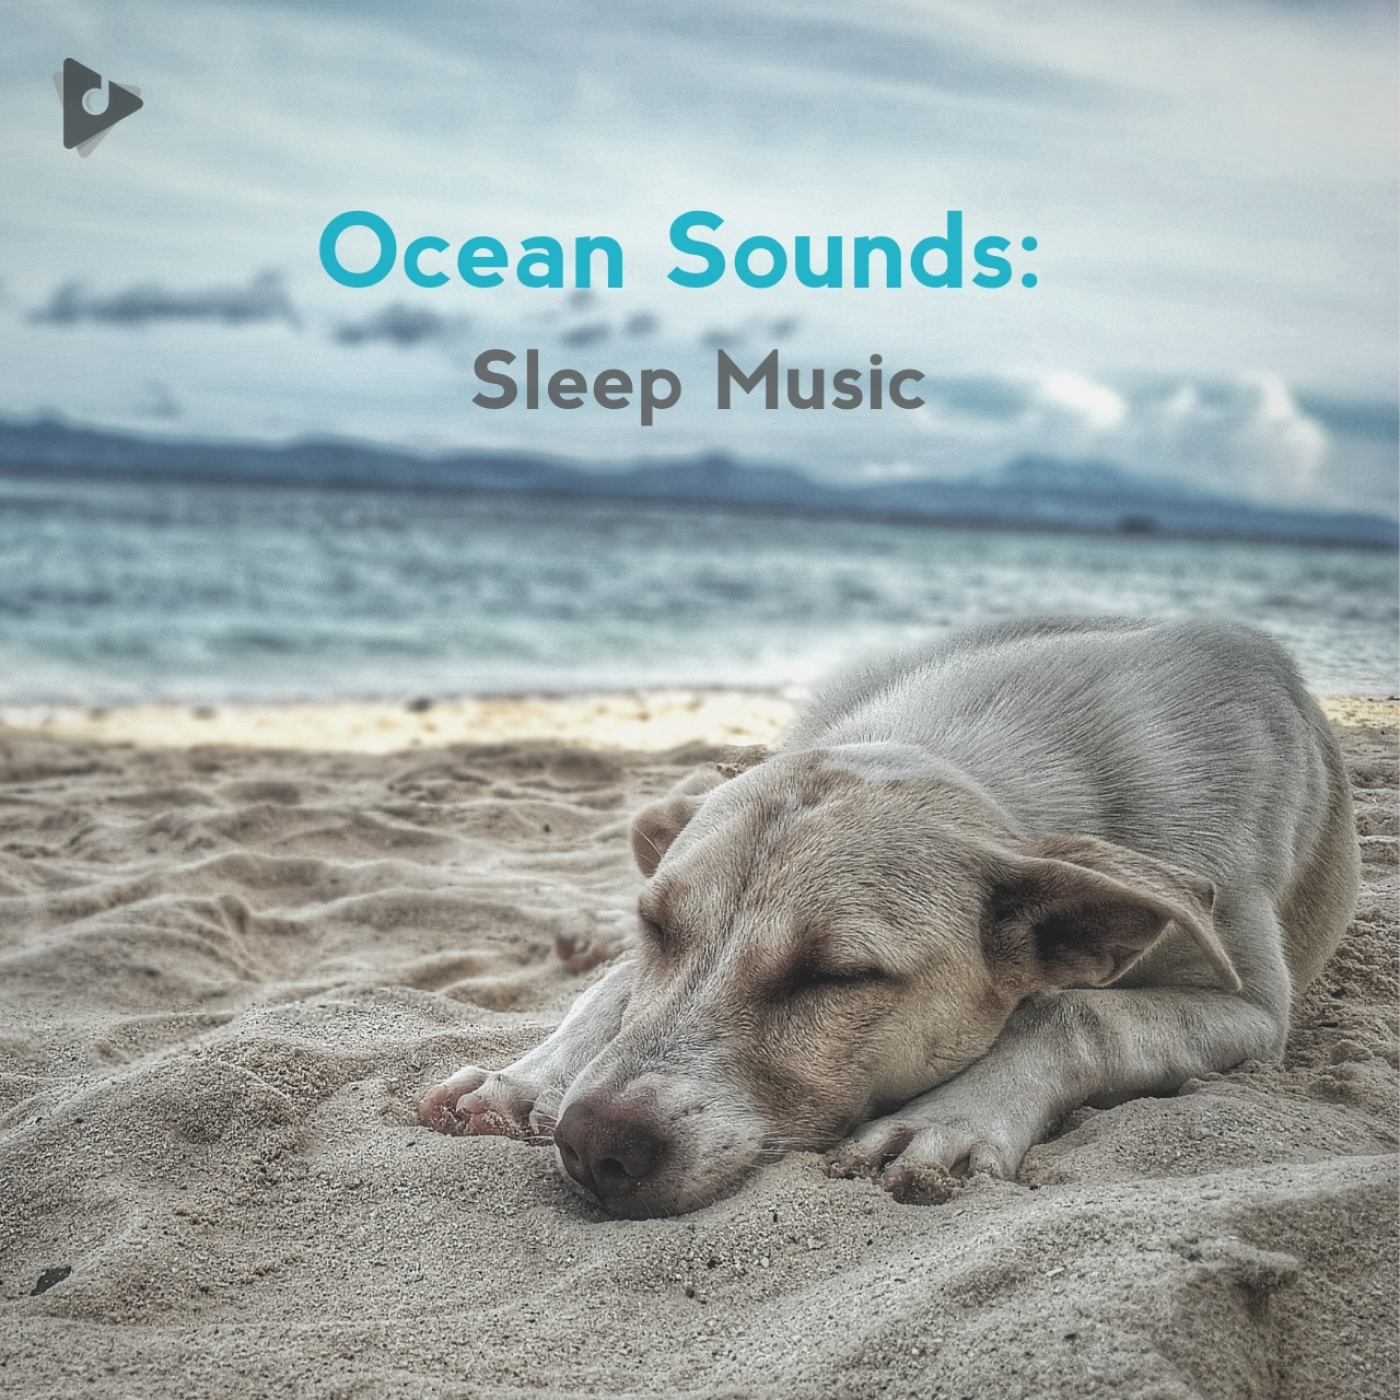 Ocean Sounds: Sleep Music